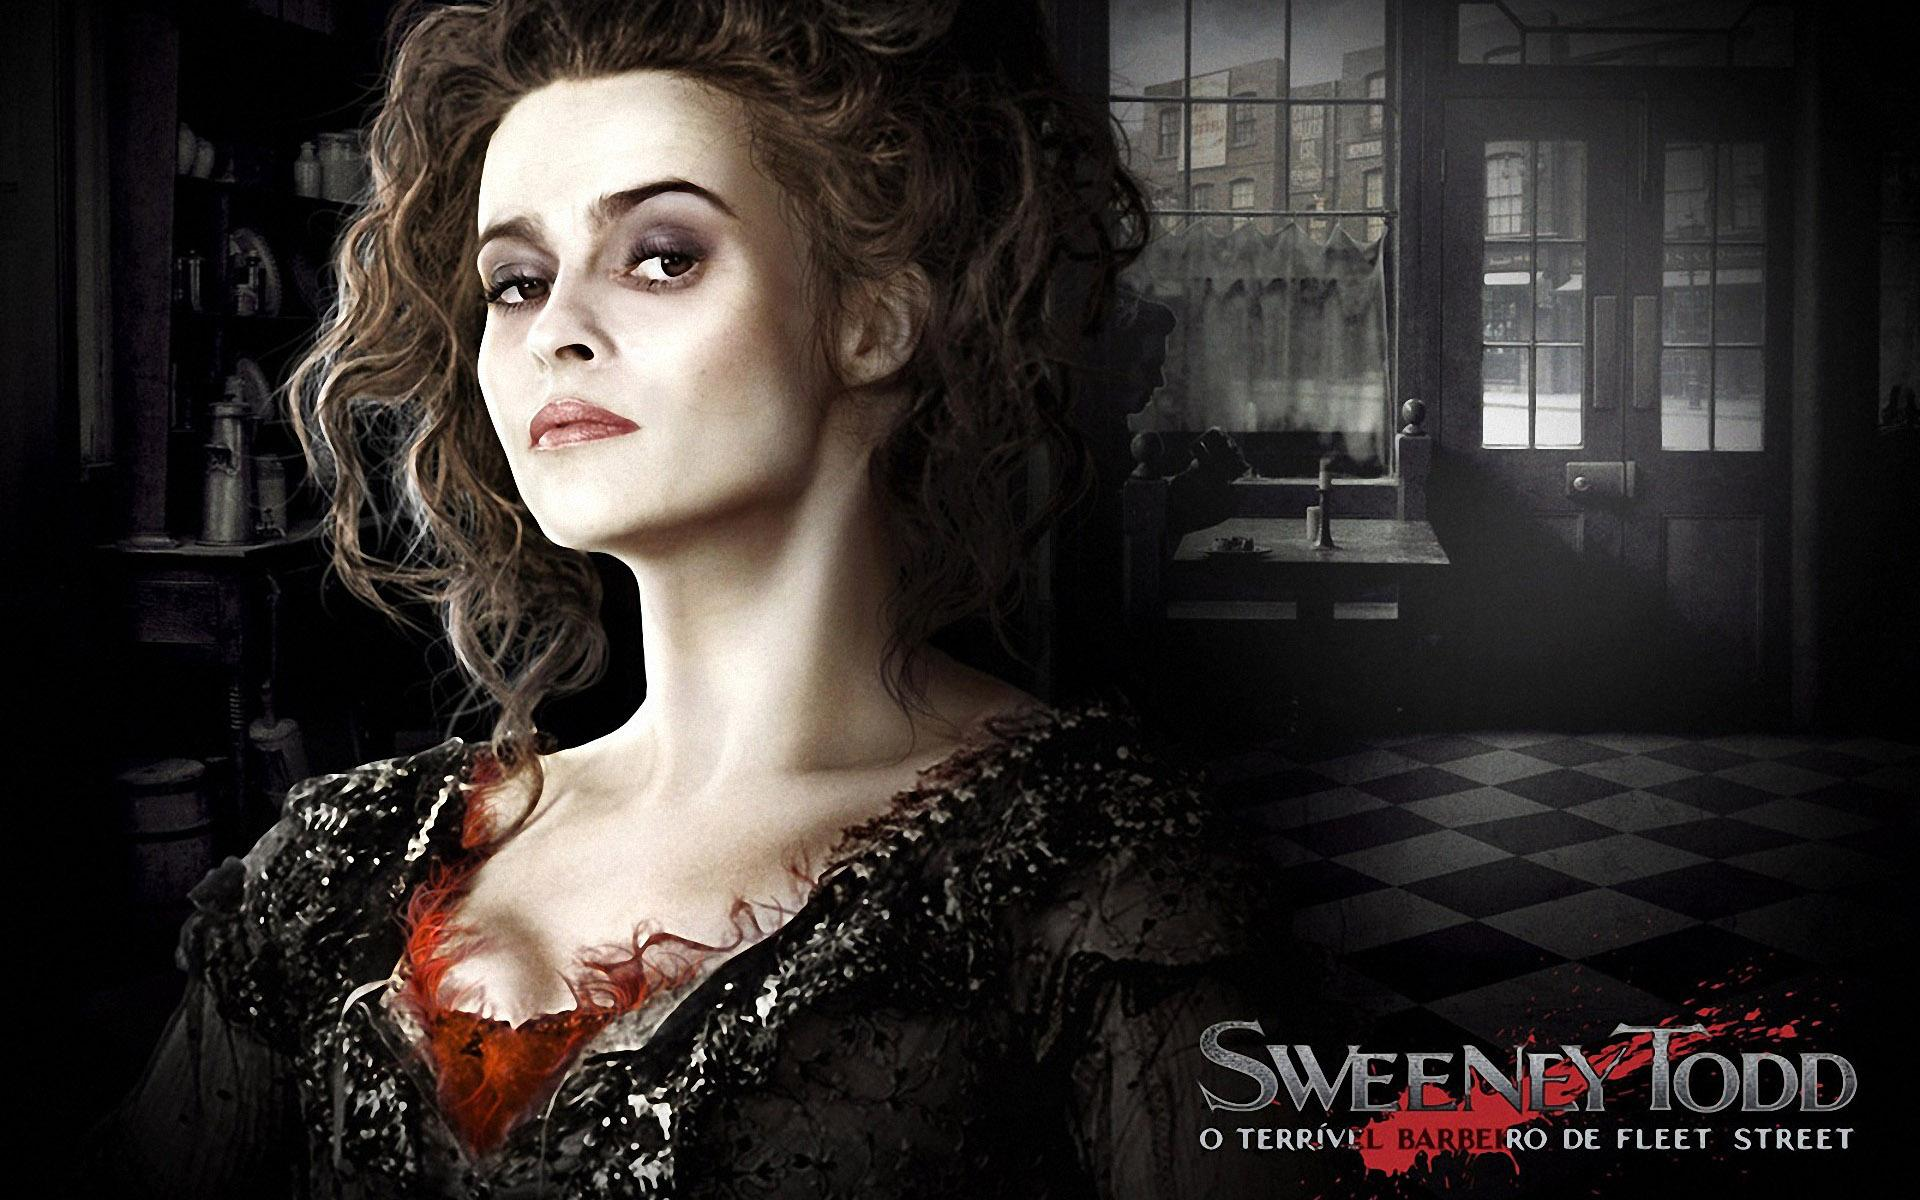 Sweeny Todd is in deed a fictional character that dates back to early 20th century. The character adapted many times to cinema or plays.